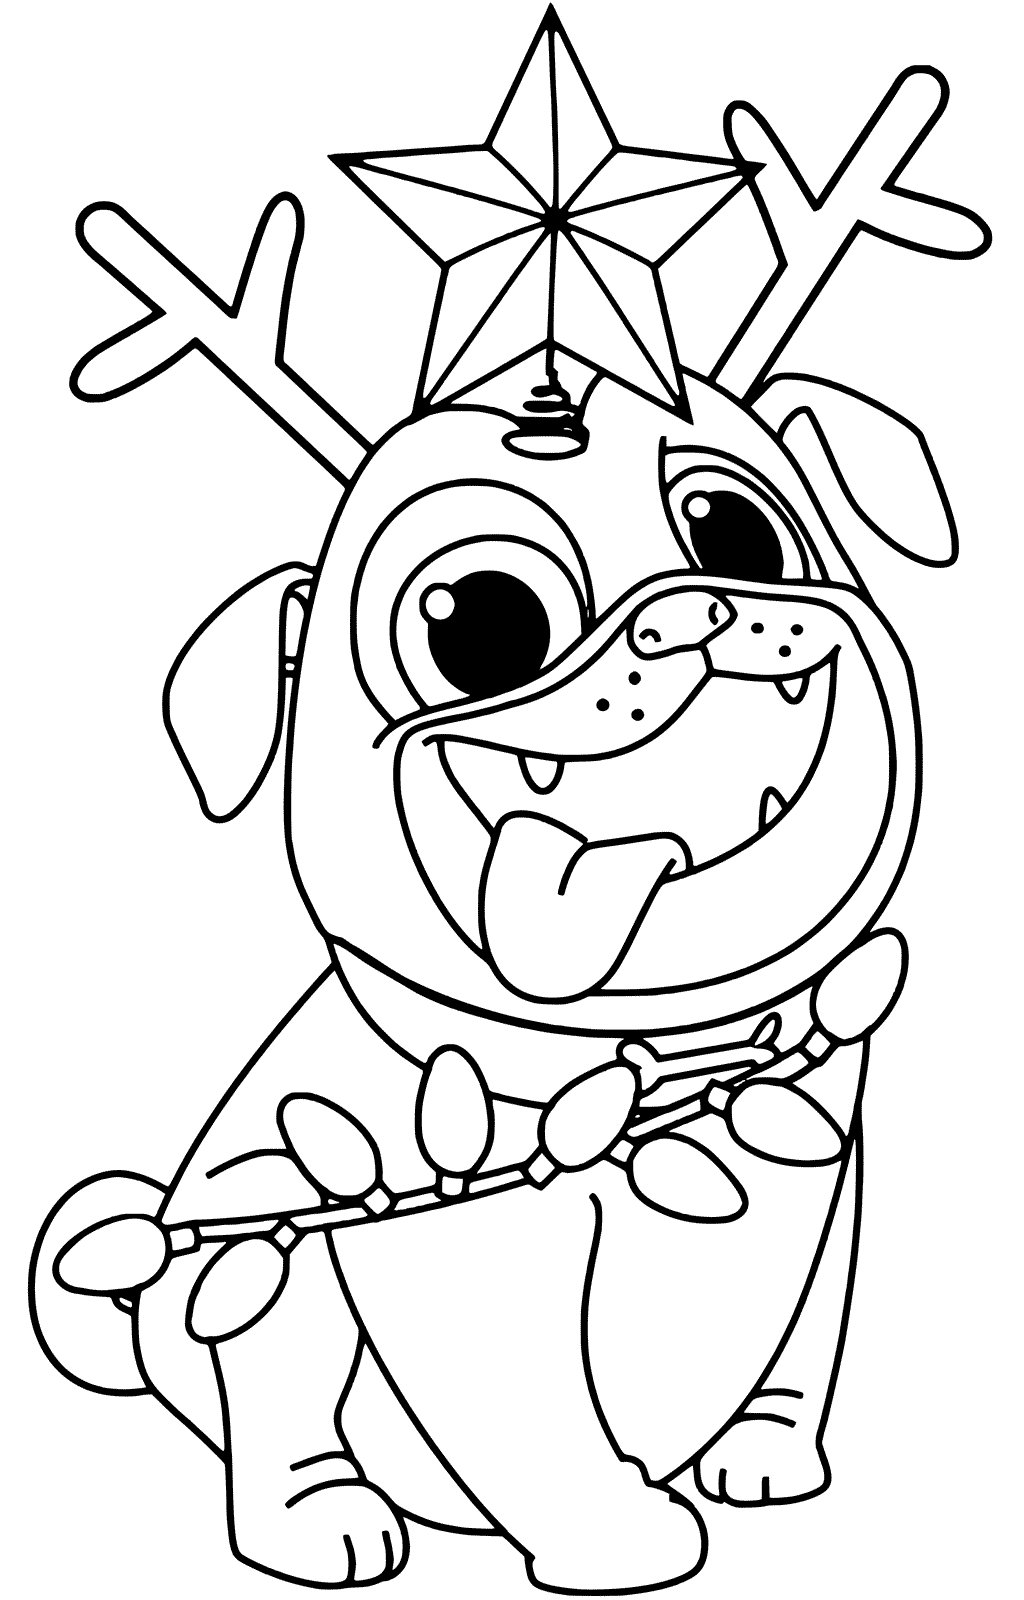 free puppy coloring pages free printable dog coloring pages dog coloring pages coloring pages free puppy